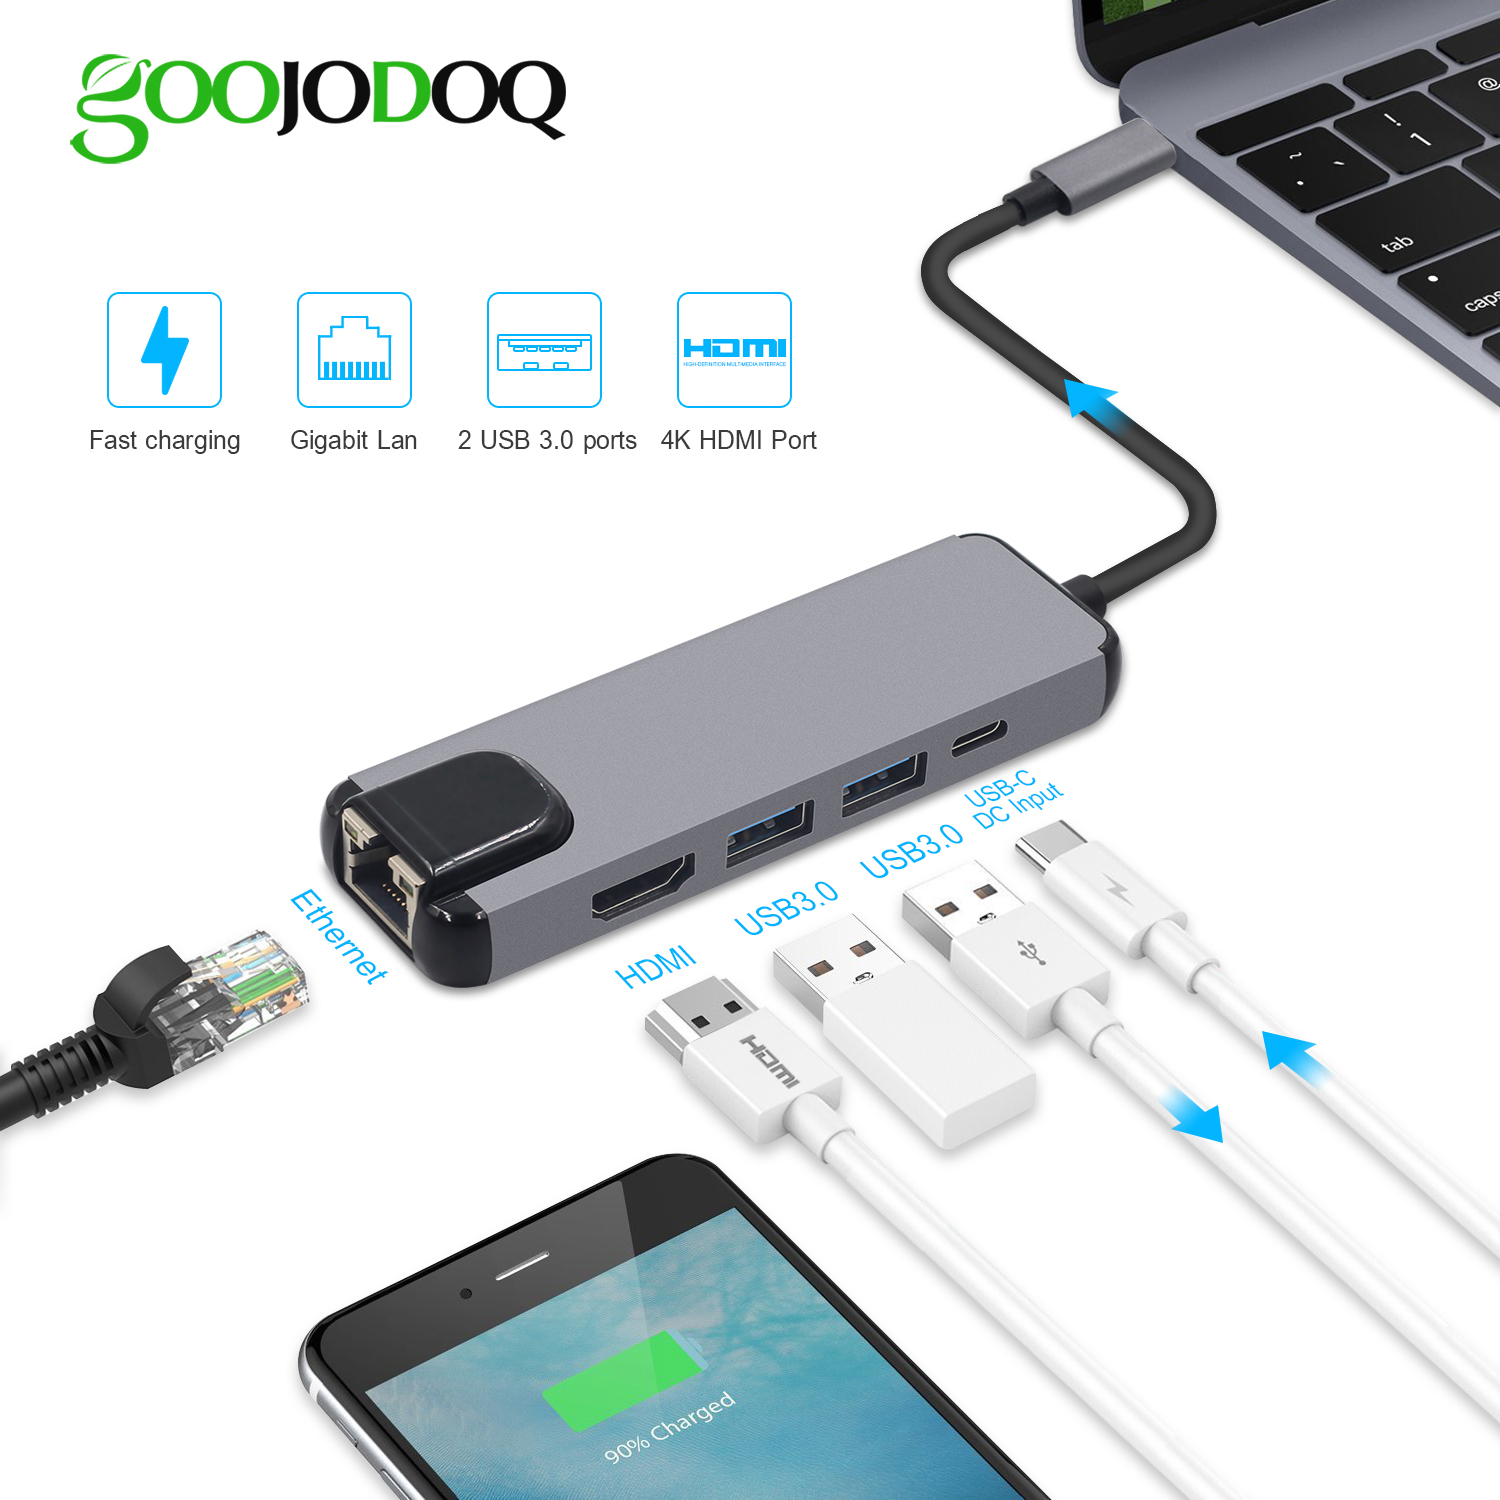 rj45 to thunderbolt diagram of the human nose and throat 5 in 1 usb type c hub hdmi gigabit ethernet